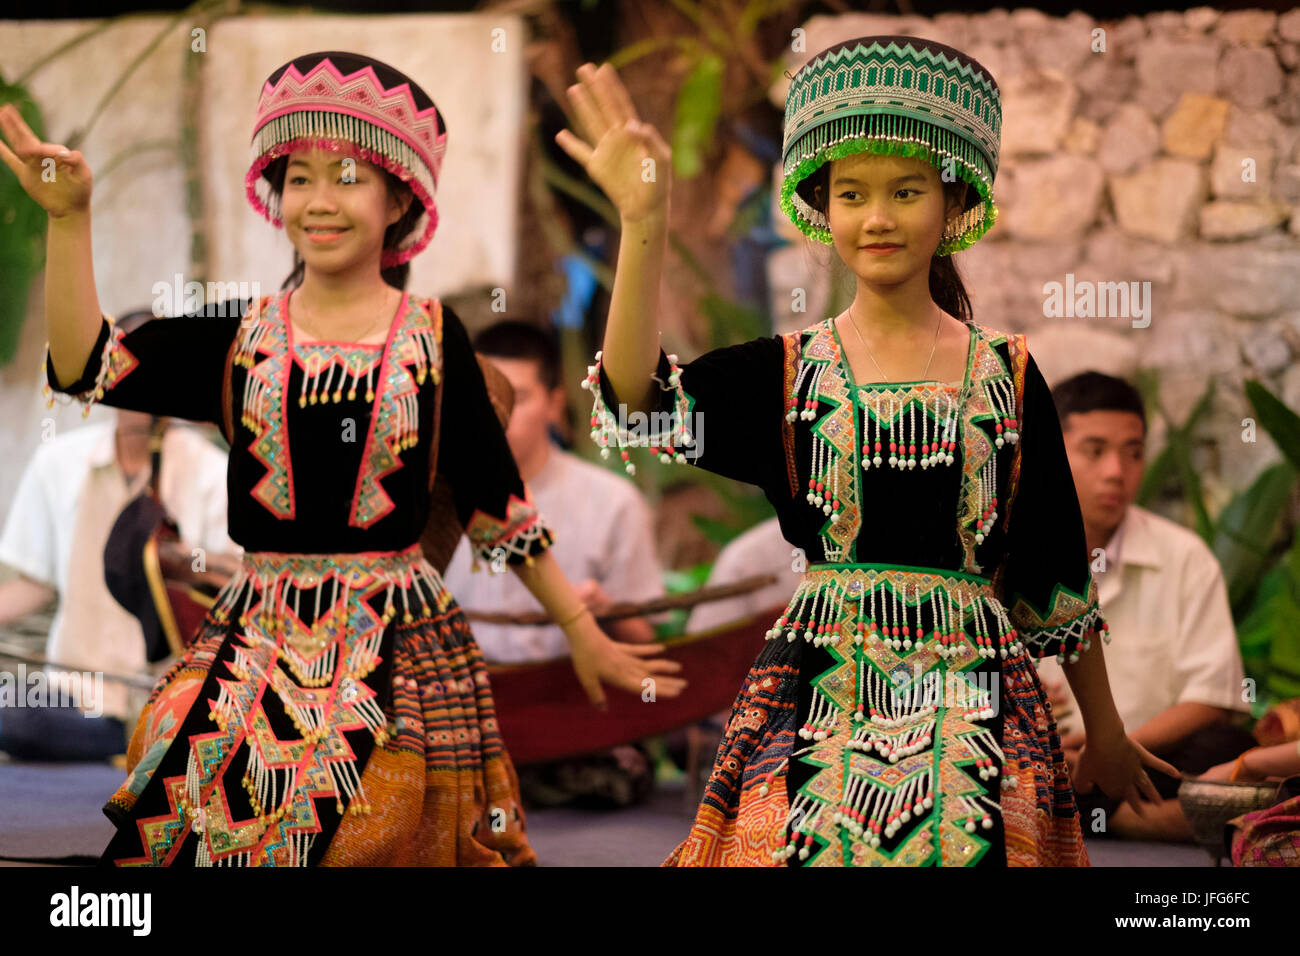 Traditional Laotian dancers with traditional clothing in Luang Prabang, Laos, Asia - Stock Image